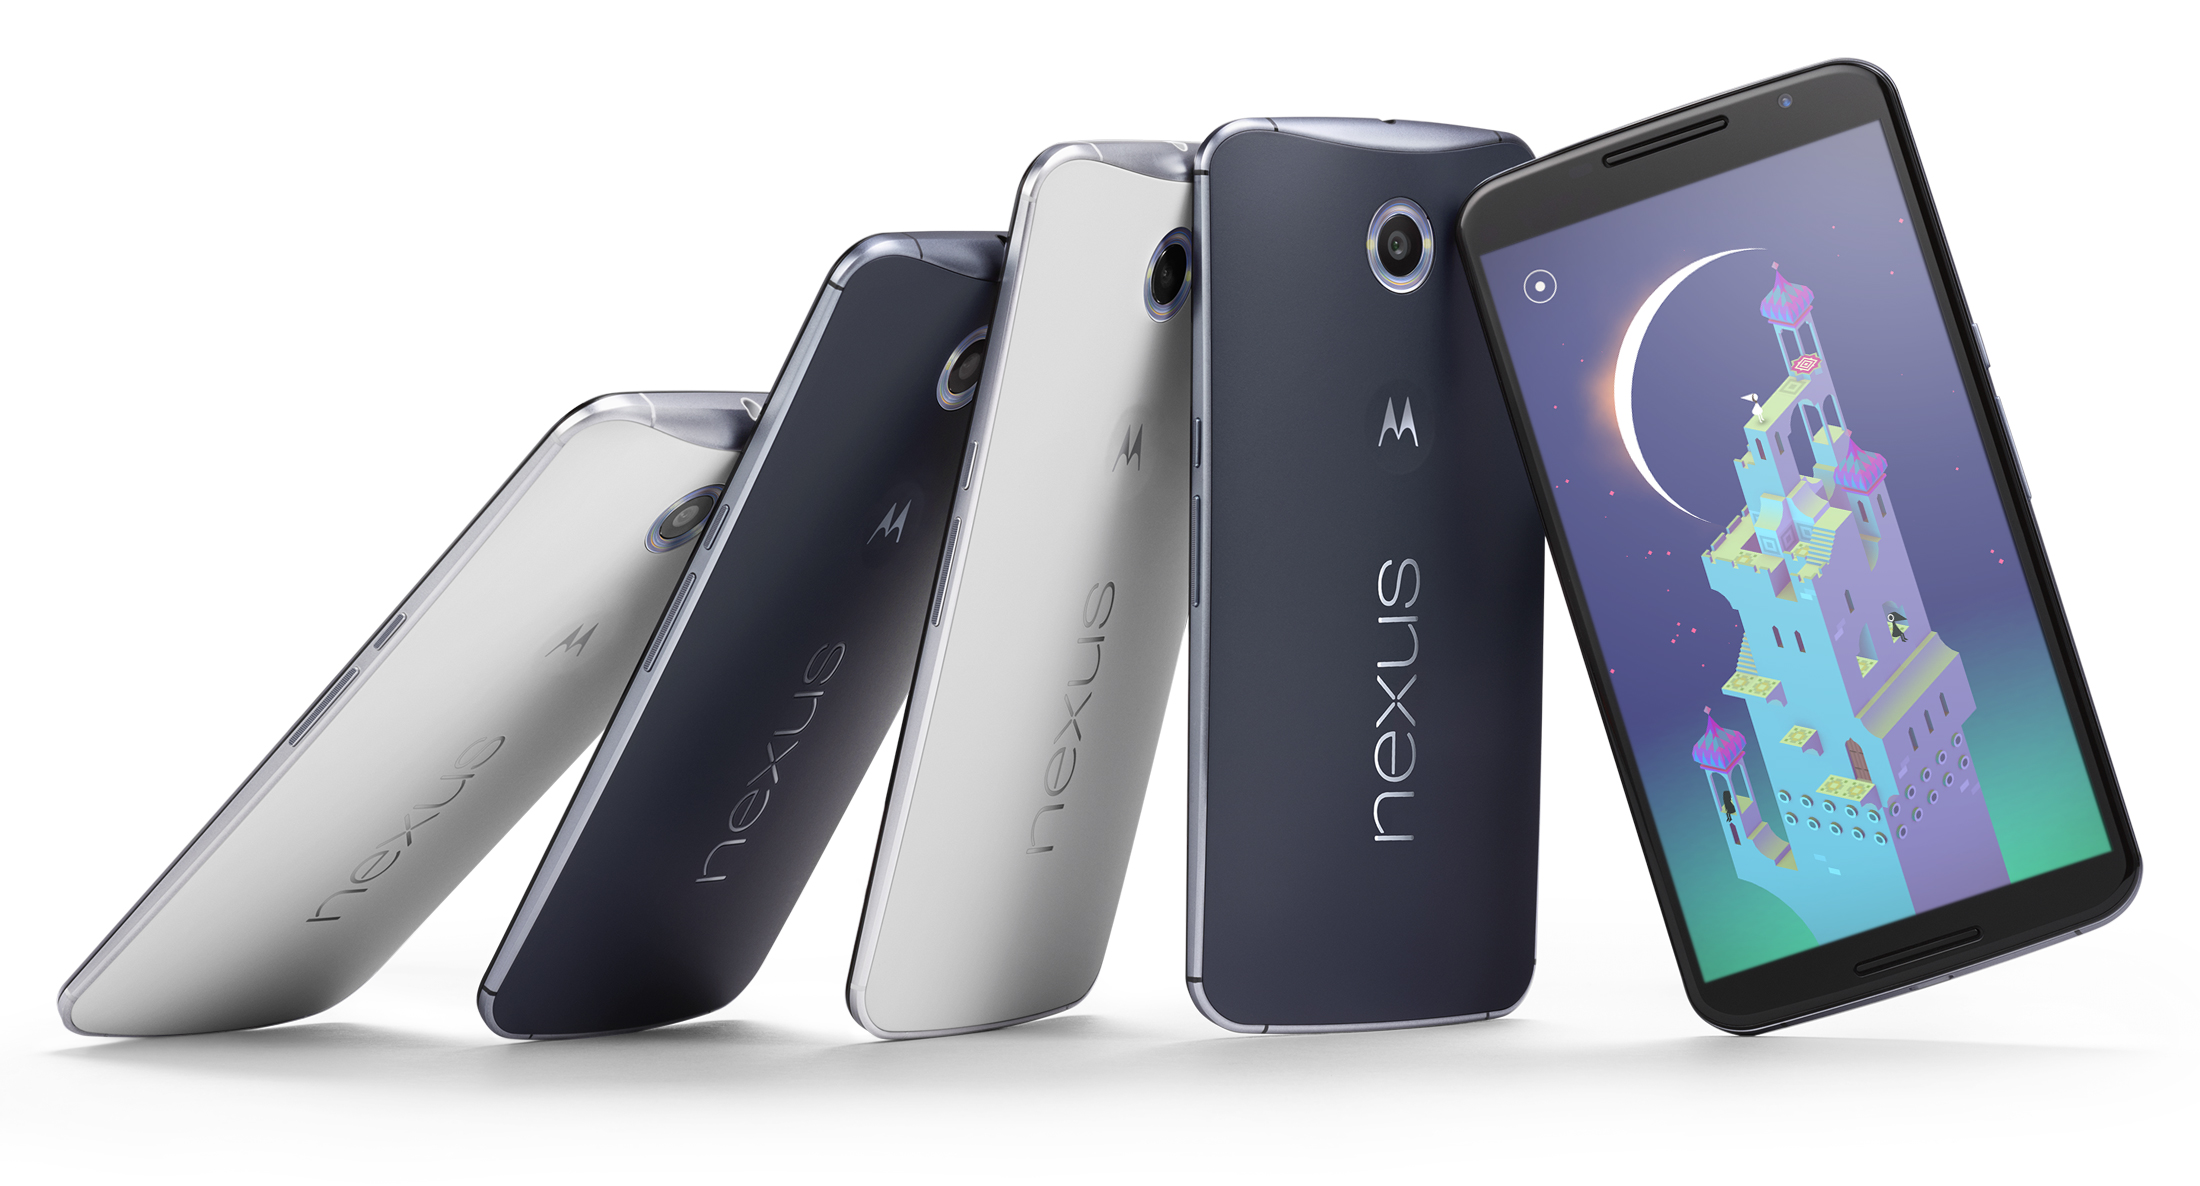 Check out the gigantic Nexus 6 compared to every Nexus phone ever made